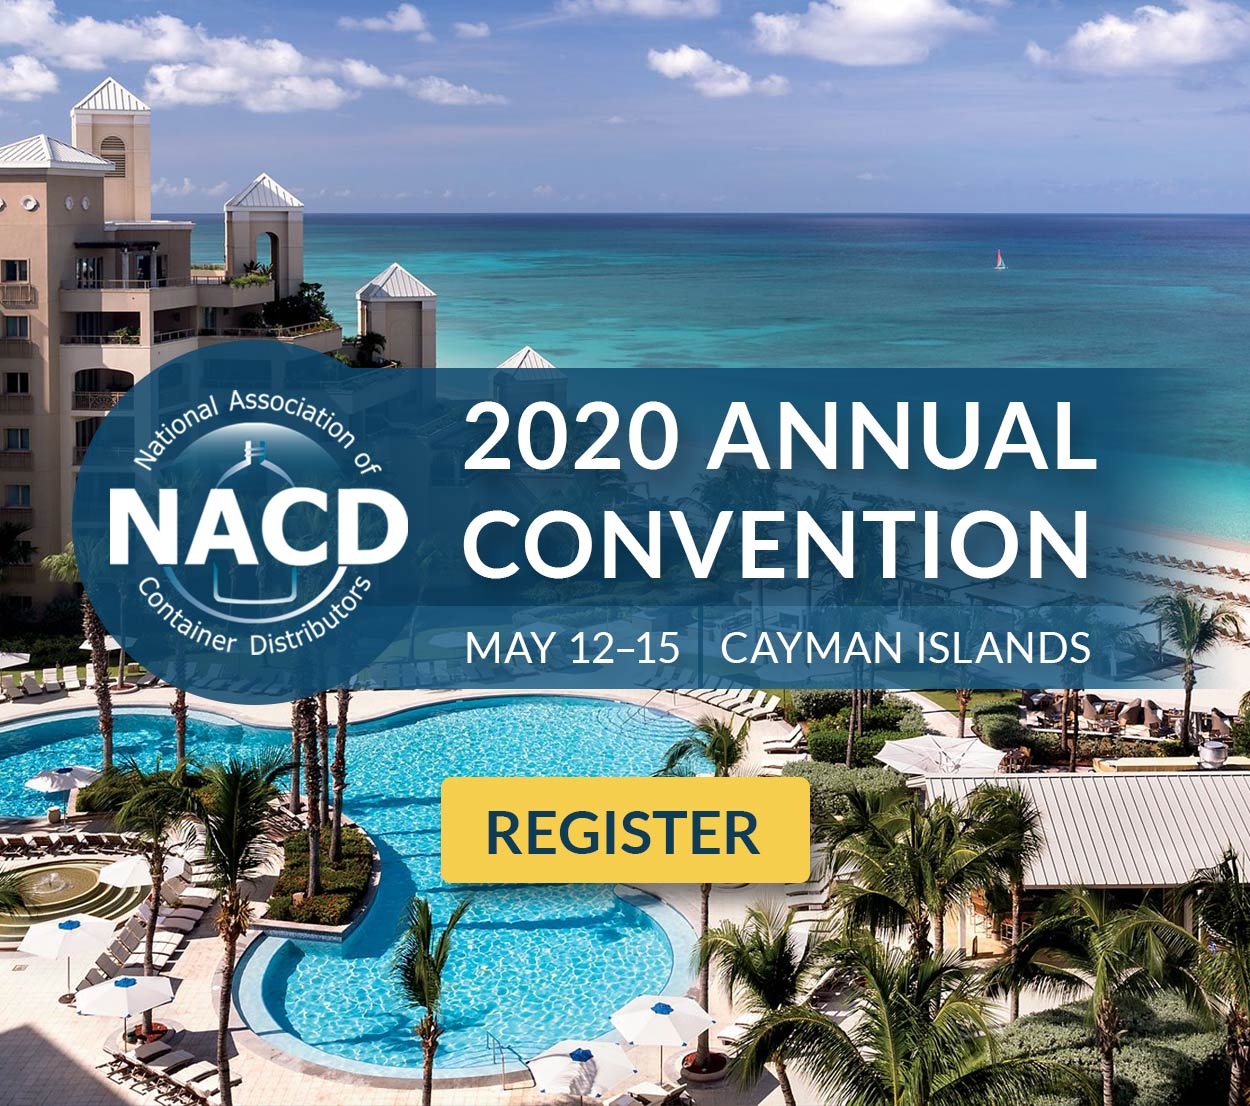 NACD 2020 Annual Meeting – May 12-15, The Ritz Carlton, Grand Cayman